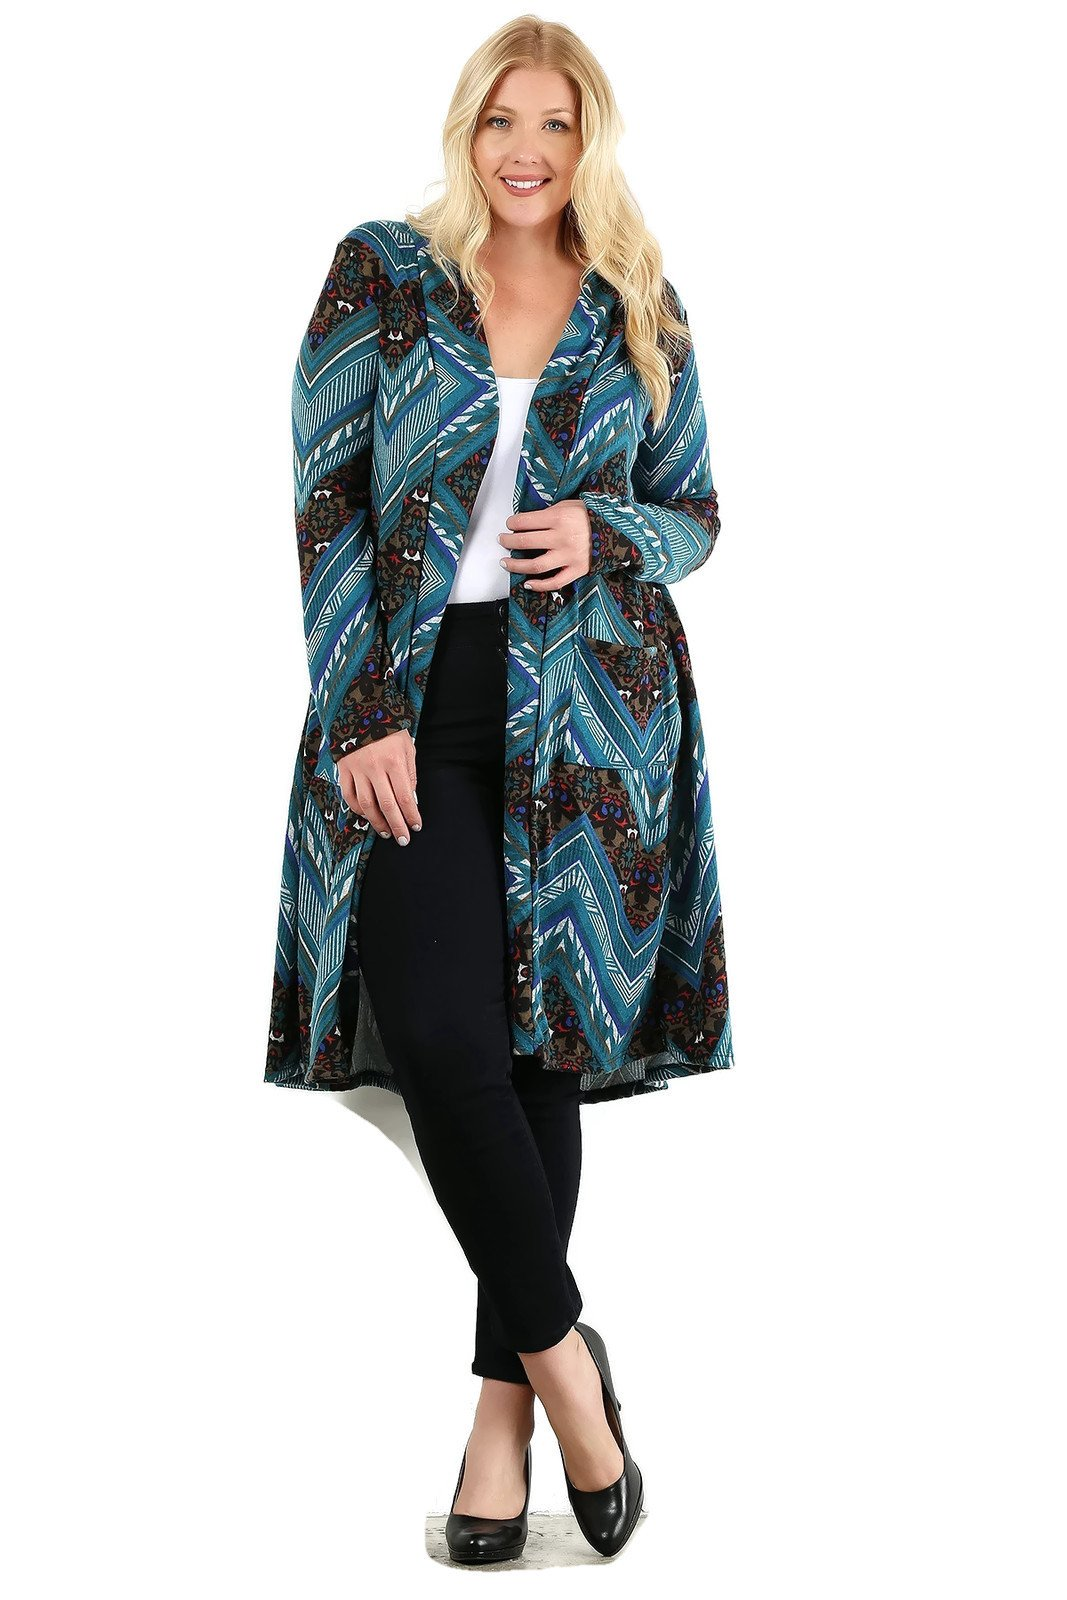 Made in USA Navajo Tribal Aztec Soft Stretch Long Tunic Cardigan Sweater Bundle: Cardigan & Wash Bag (3XL, Teal Multi)